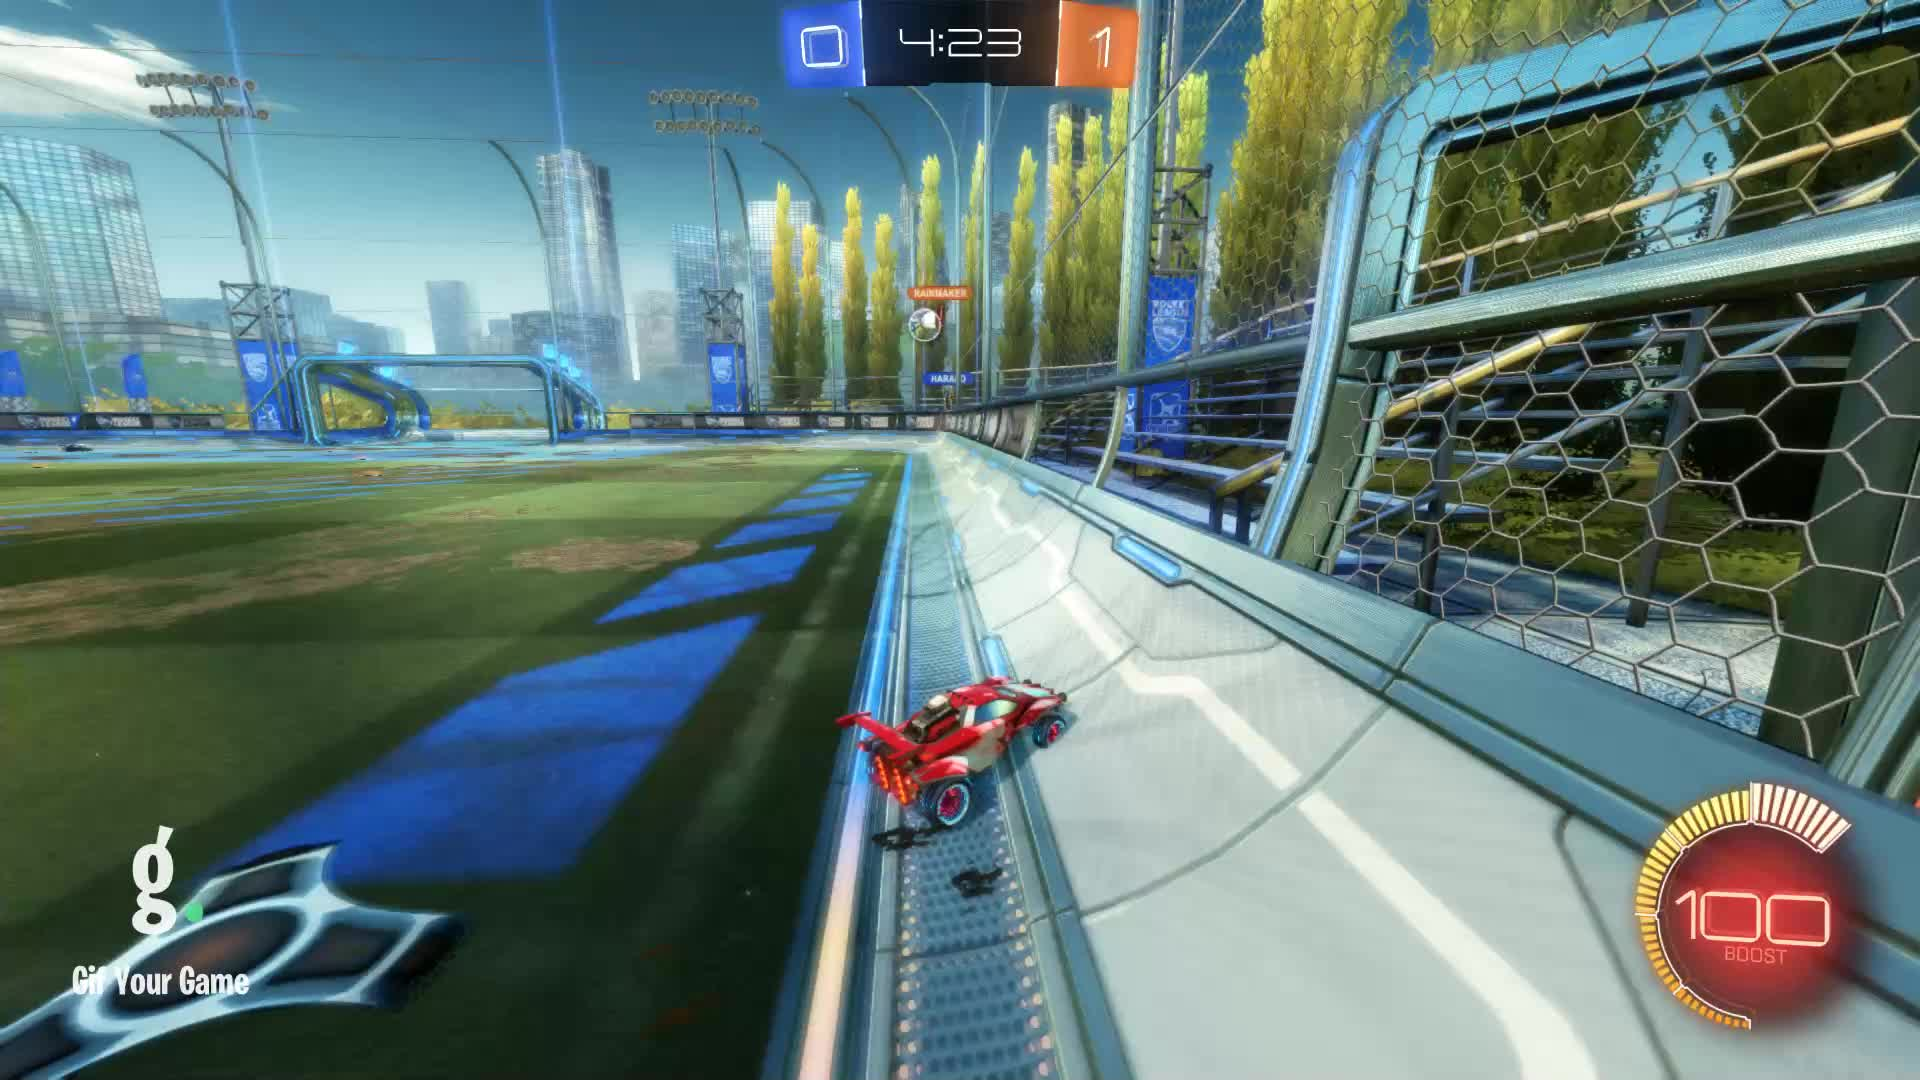 Gif Your Game, GifYourGame, Goal, Rocket League, RocketLeague, Timper [NL], Goal 2: Timper [NL] GIFs